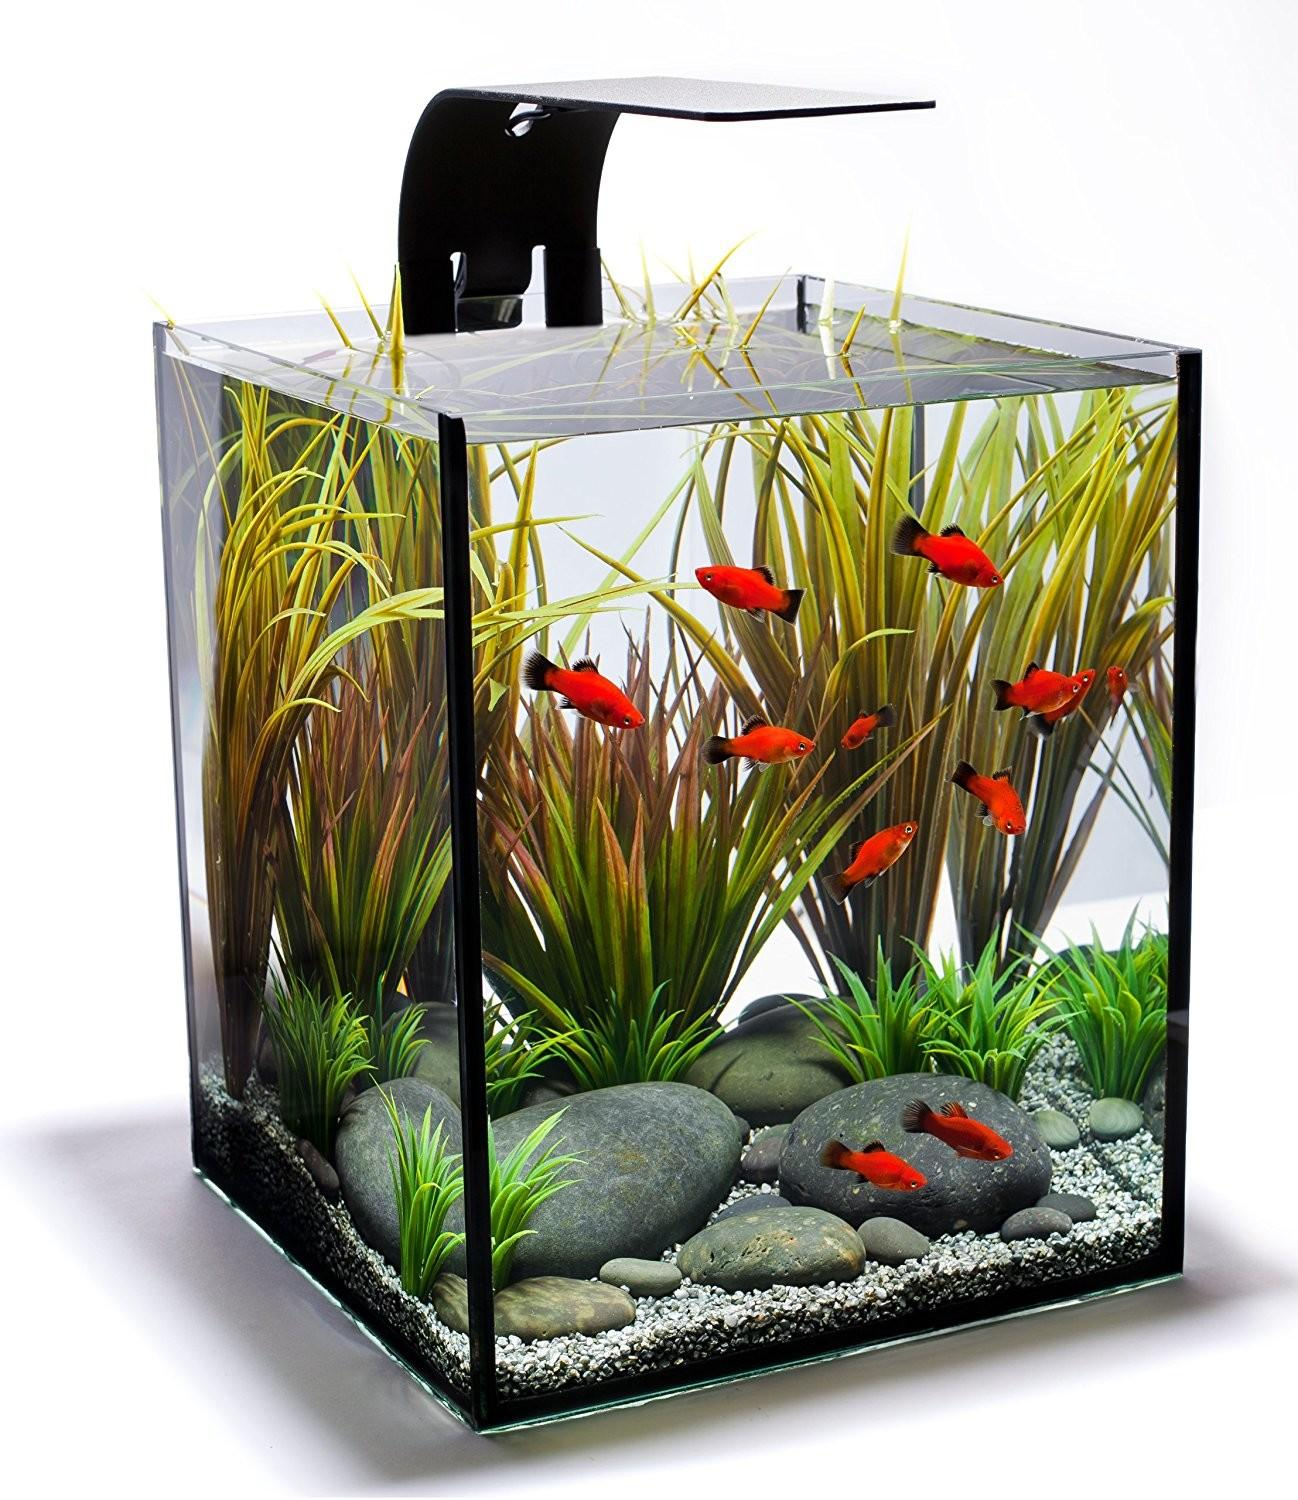 Cool Fish Tanks Modern Aquarium Design